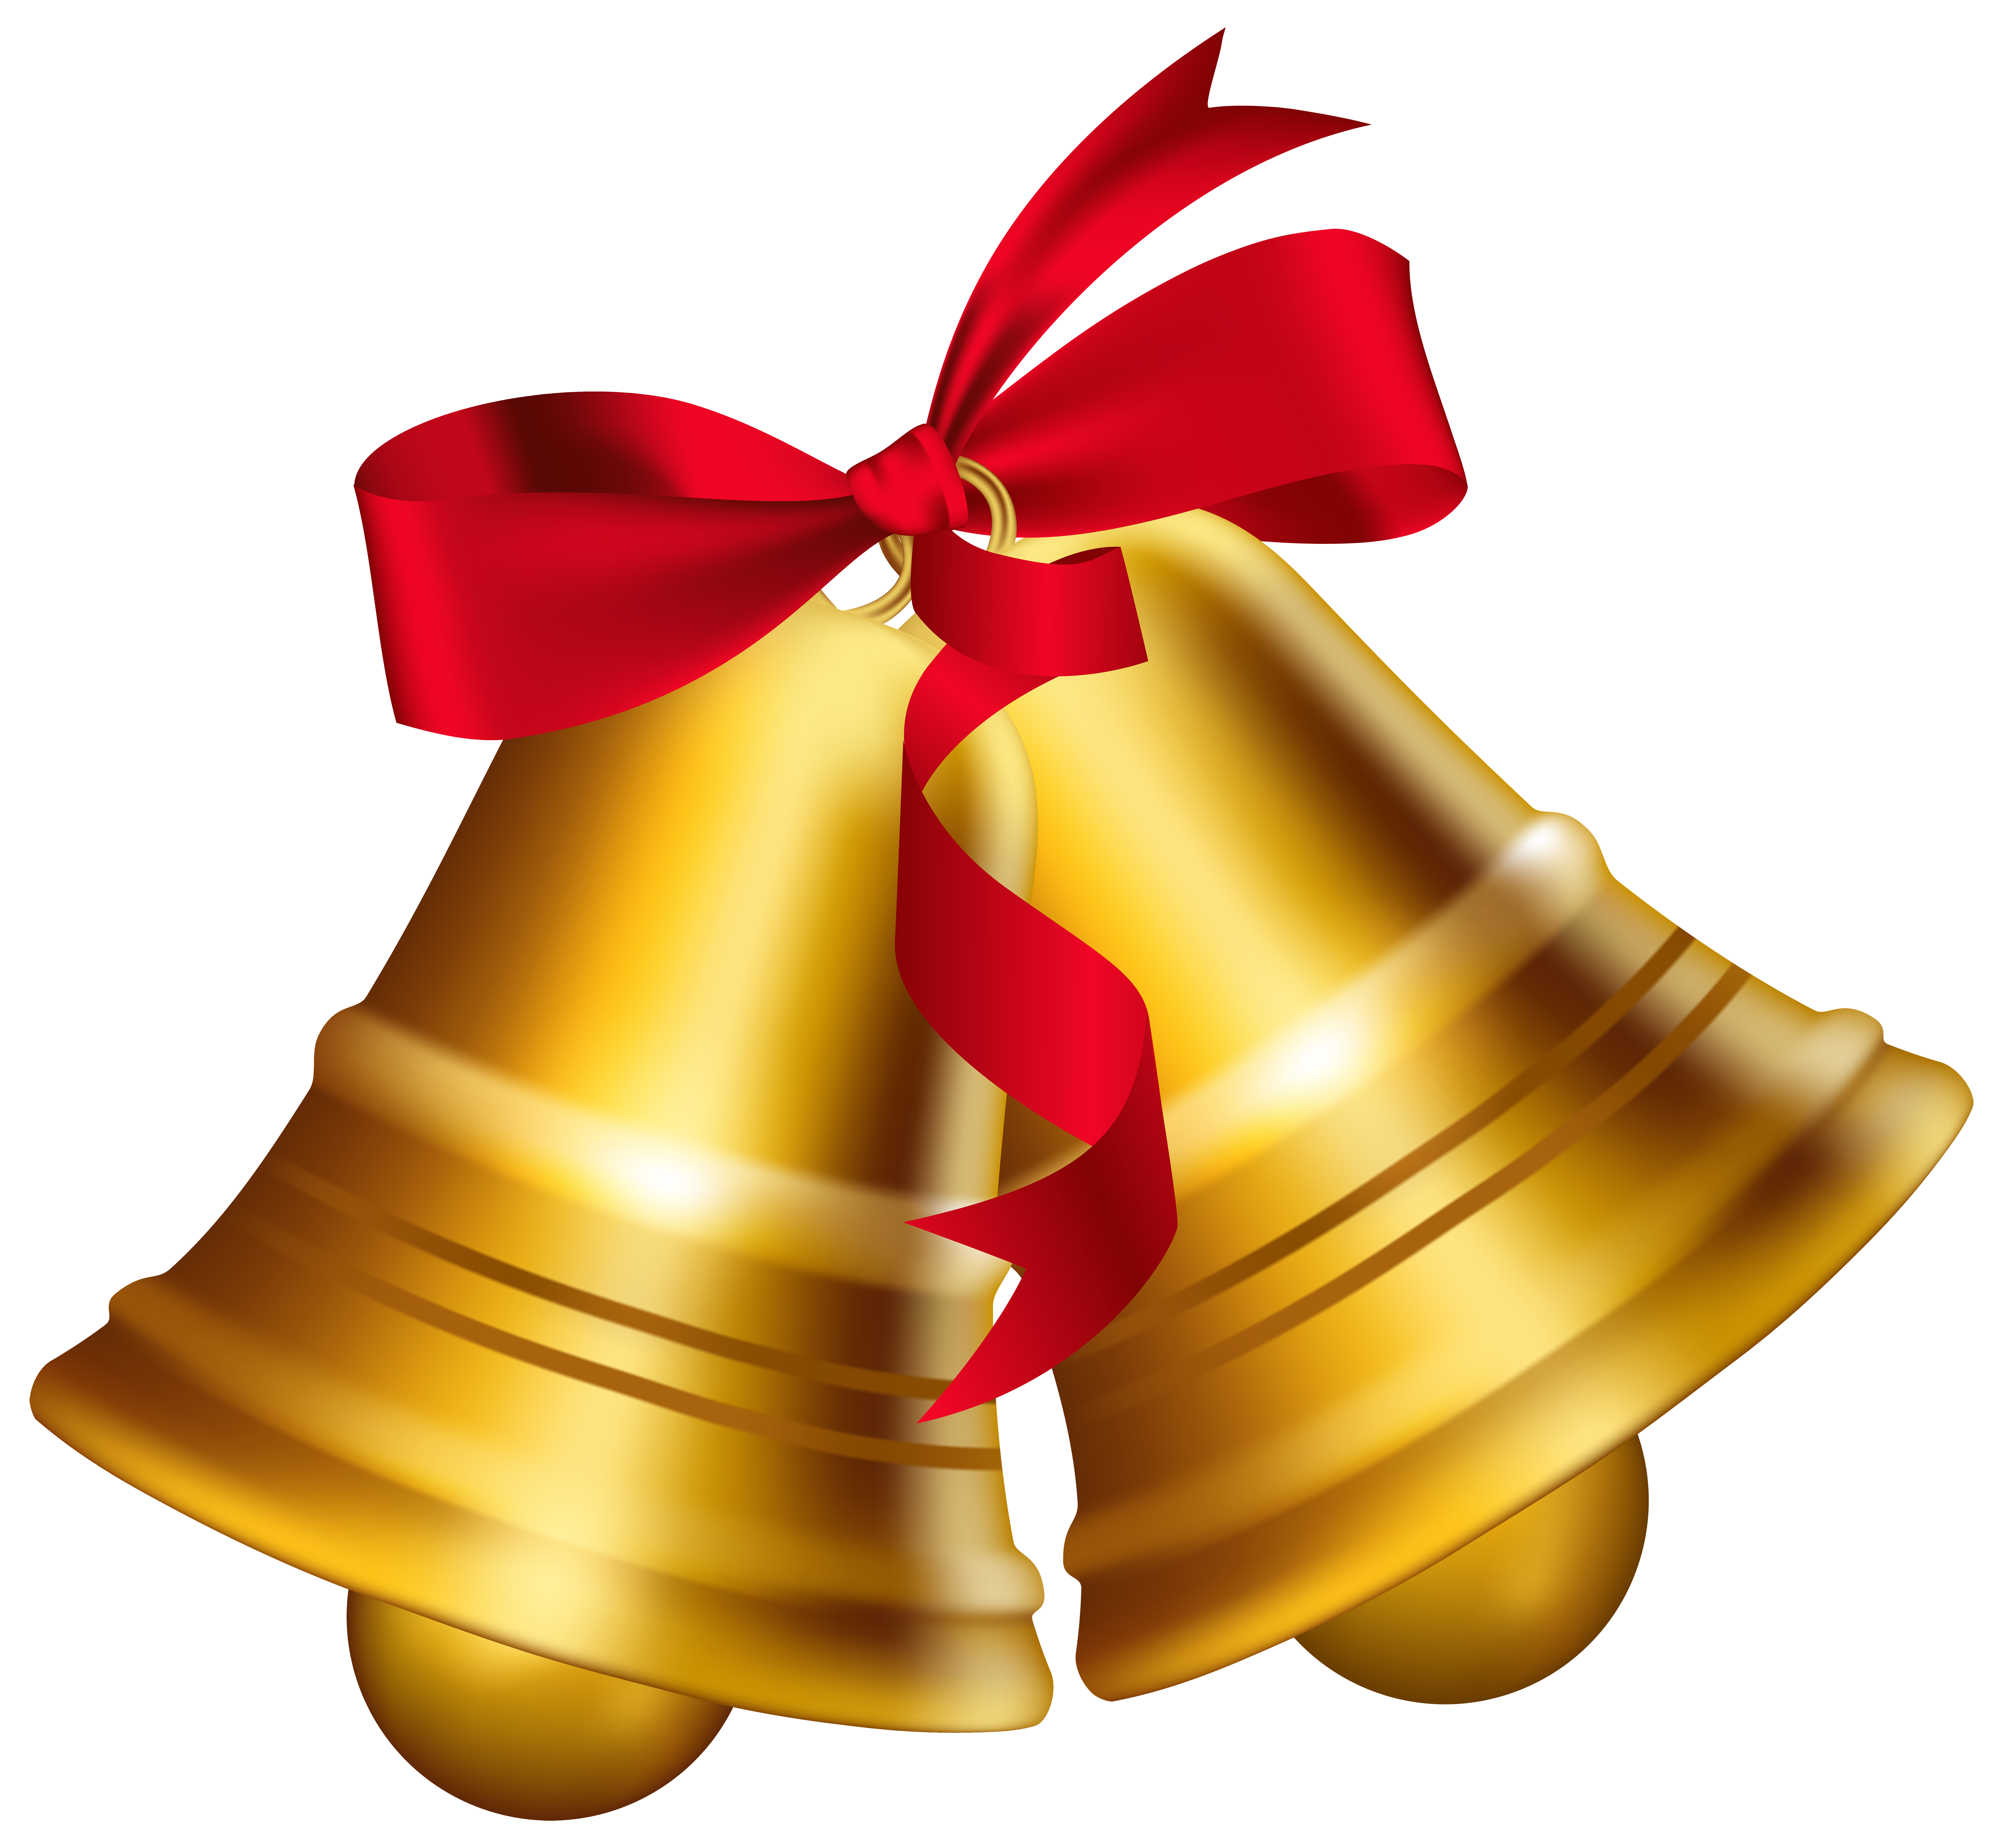 Christmas bells images clipart best